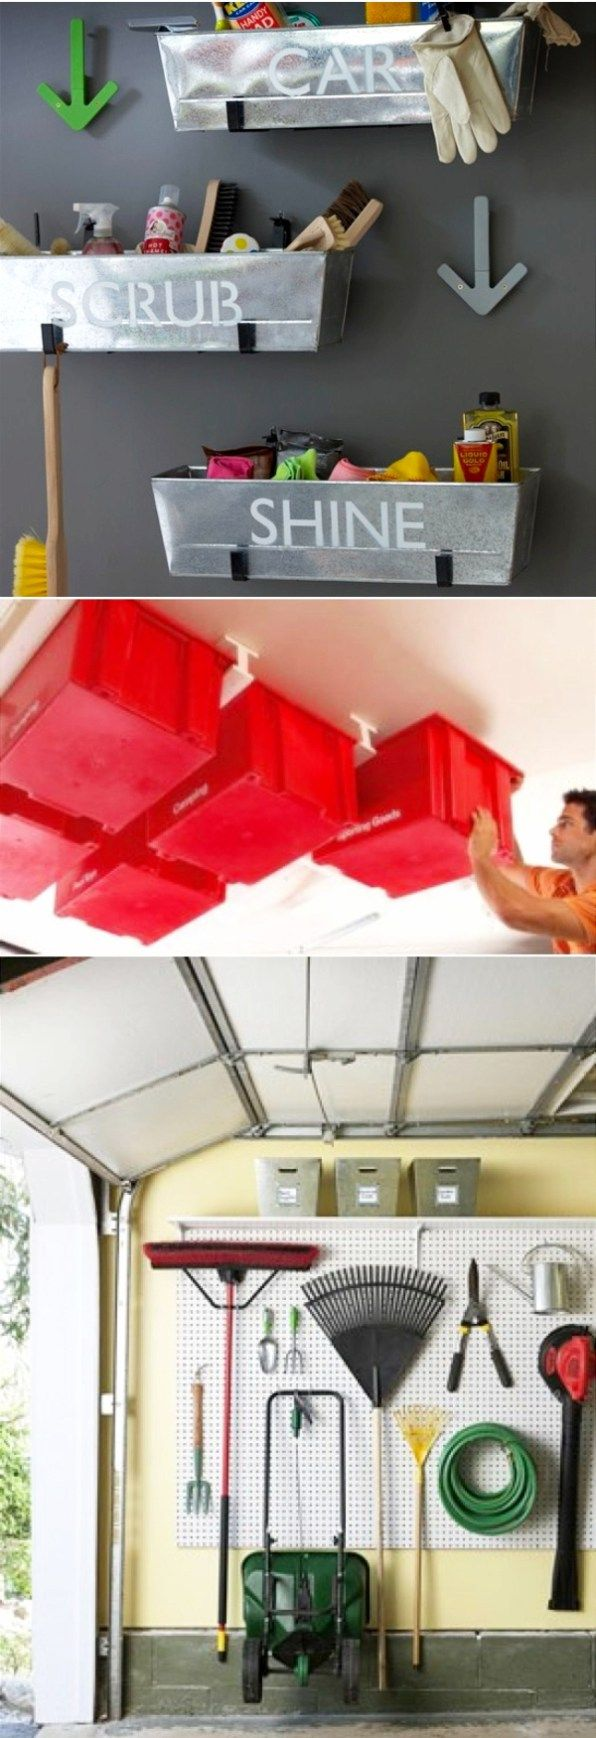 Garage Organization and Storage Ideas - Organize your garage clutter with these 5 quick and cheap garage organizing ideas - DIY Garage organization ideas, tips, storage ideas for the ultimate garage